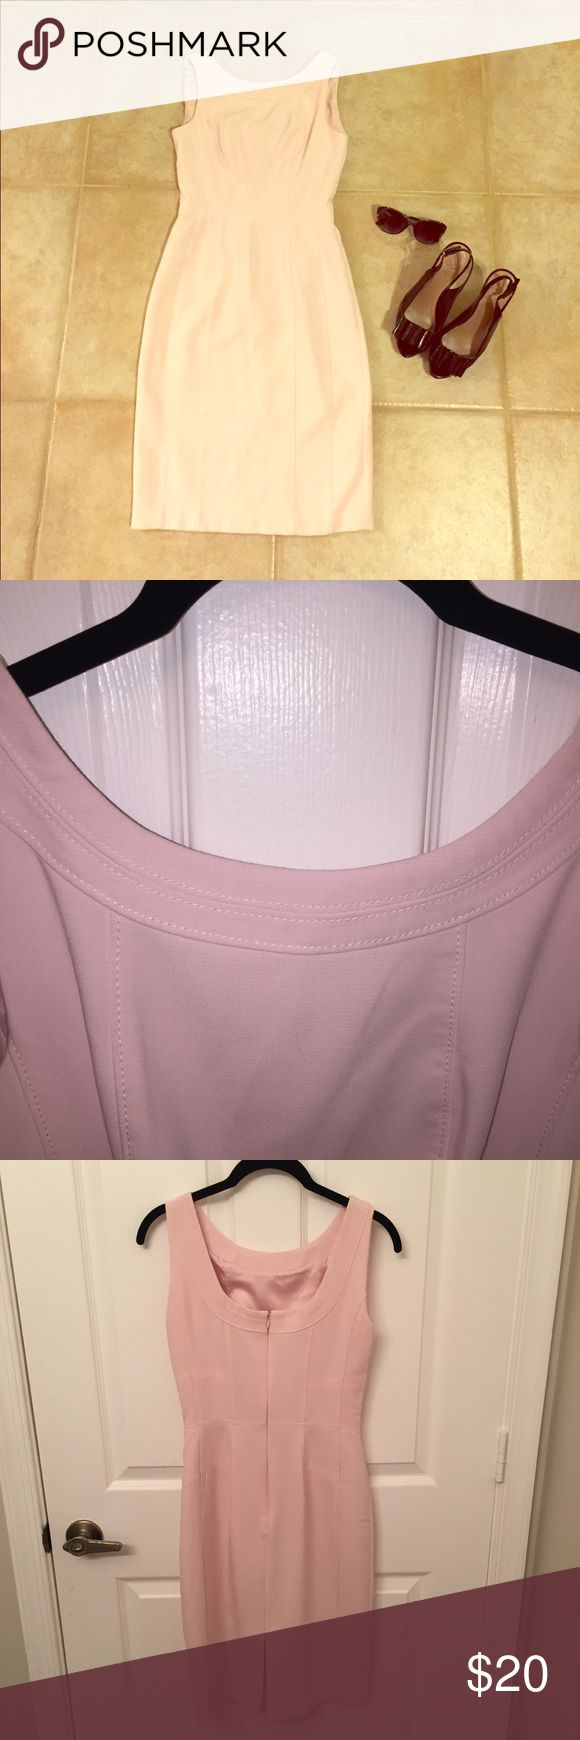 WHBM Pink Wiggle Dress Beautiful pastel pink dress. Great for work, weddings or a date night out! No flaws, worn once. White House Black Market Dresses